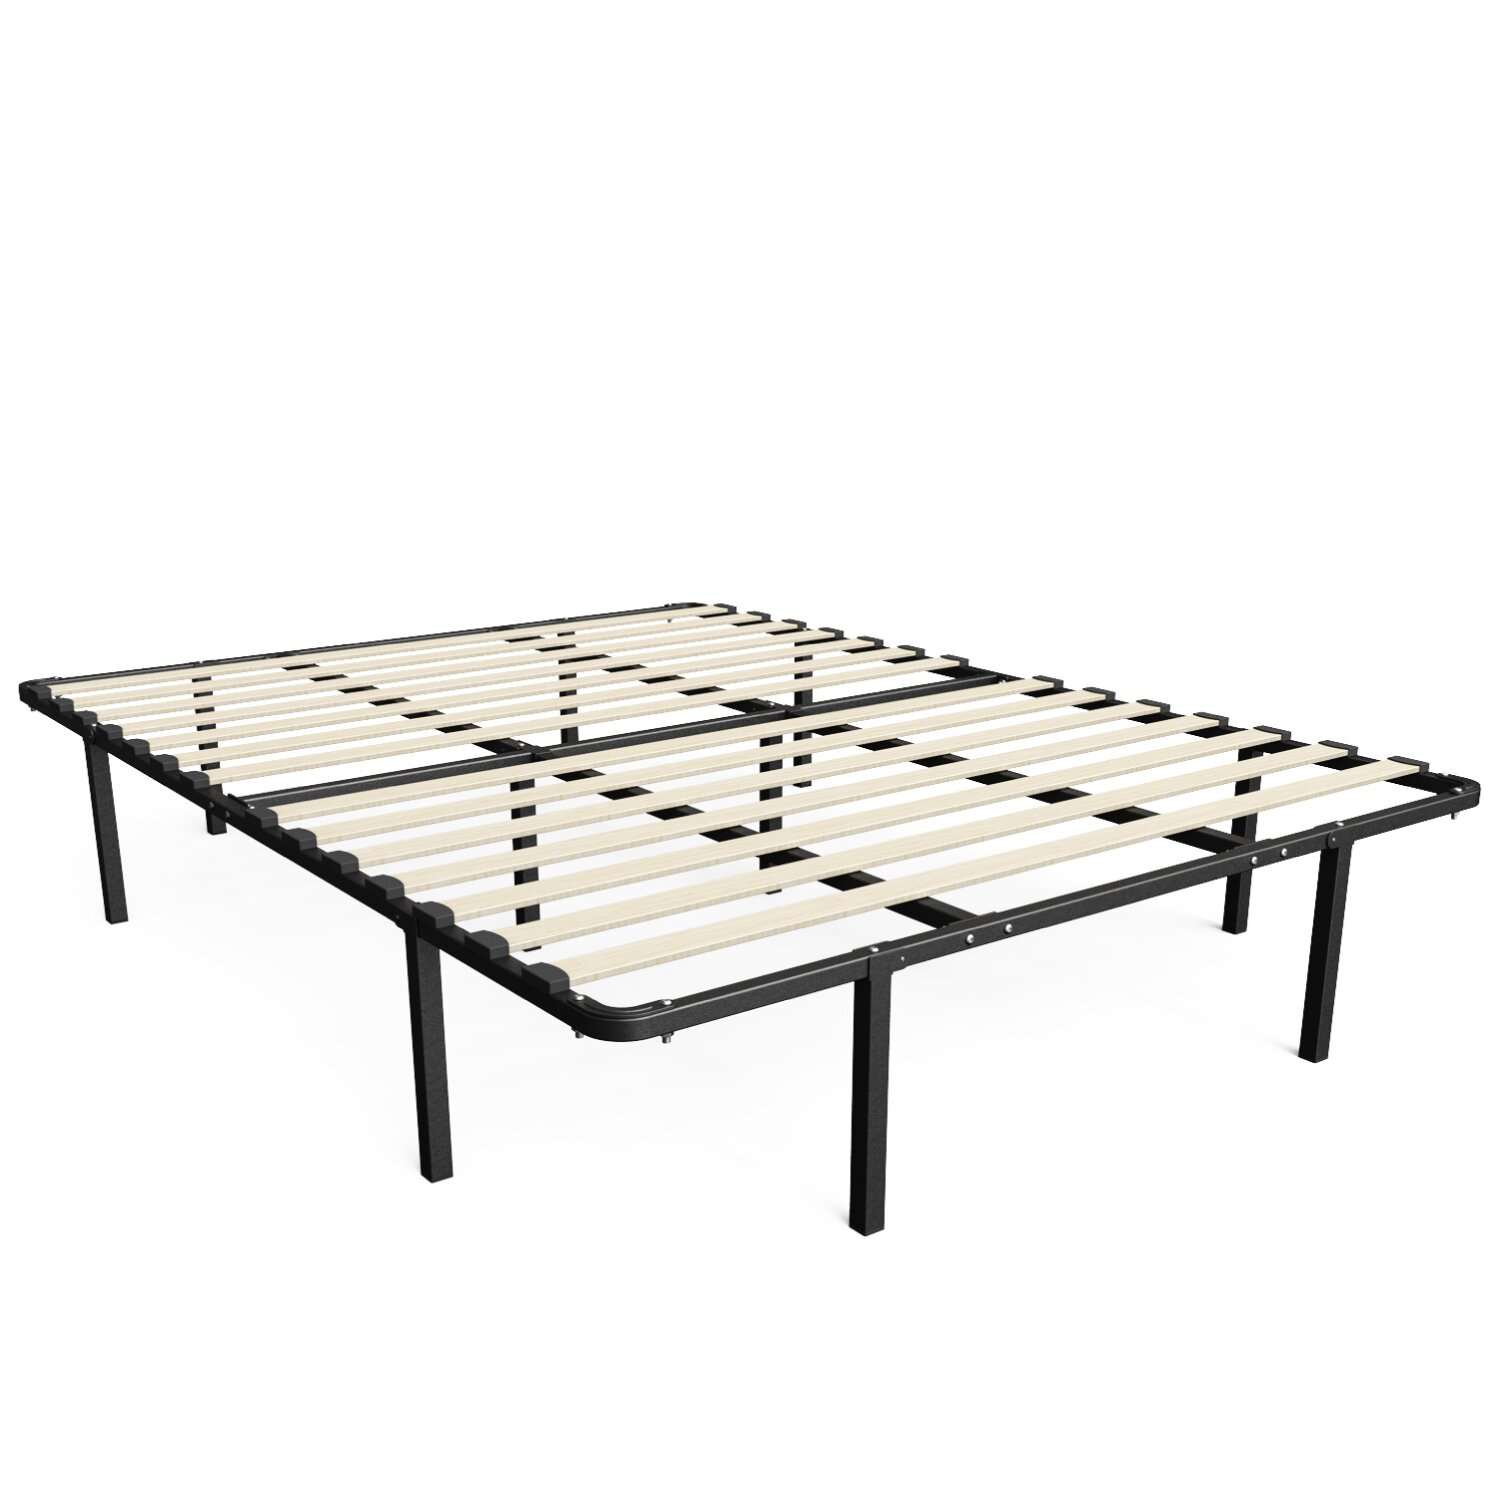 Box Springs Foundations And Platform Beds Which One Is Right For Me